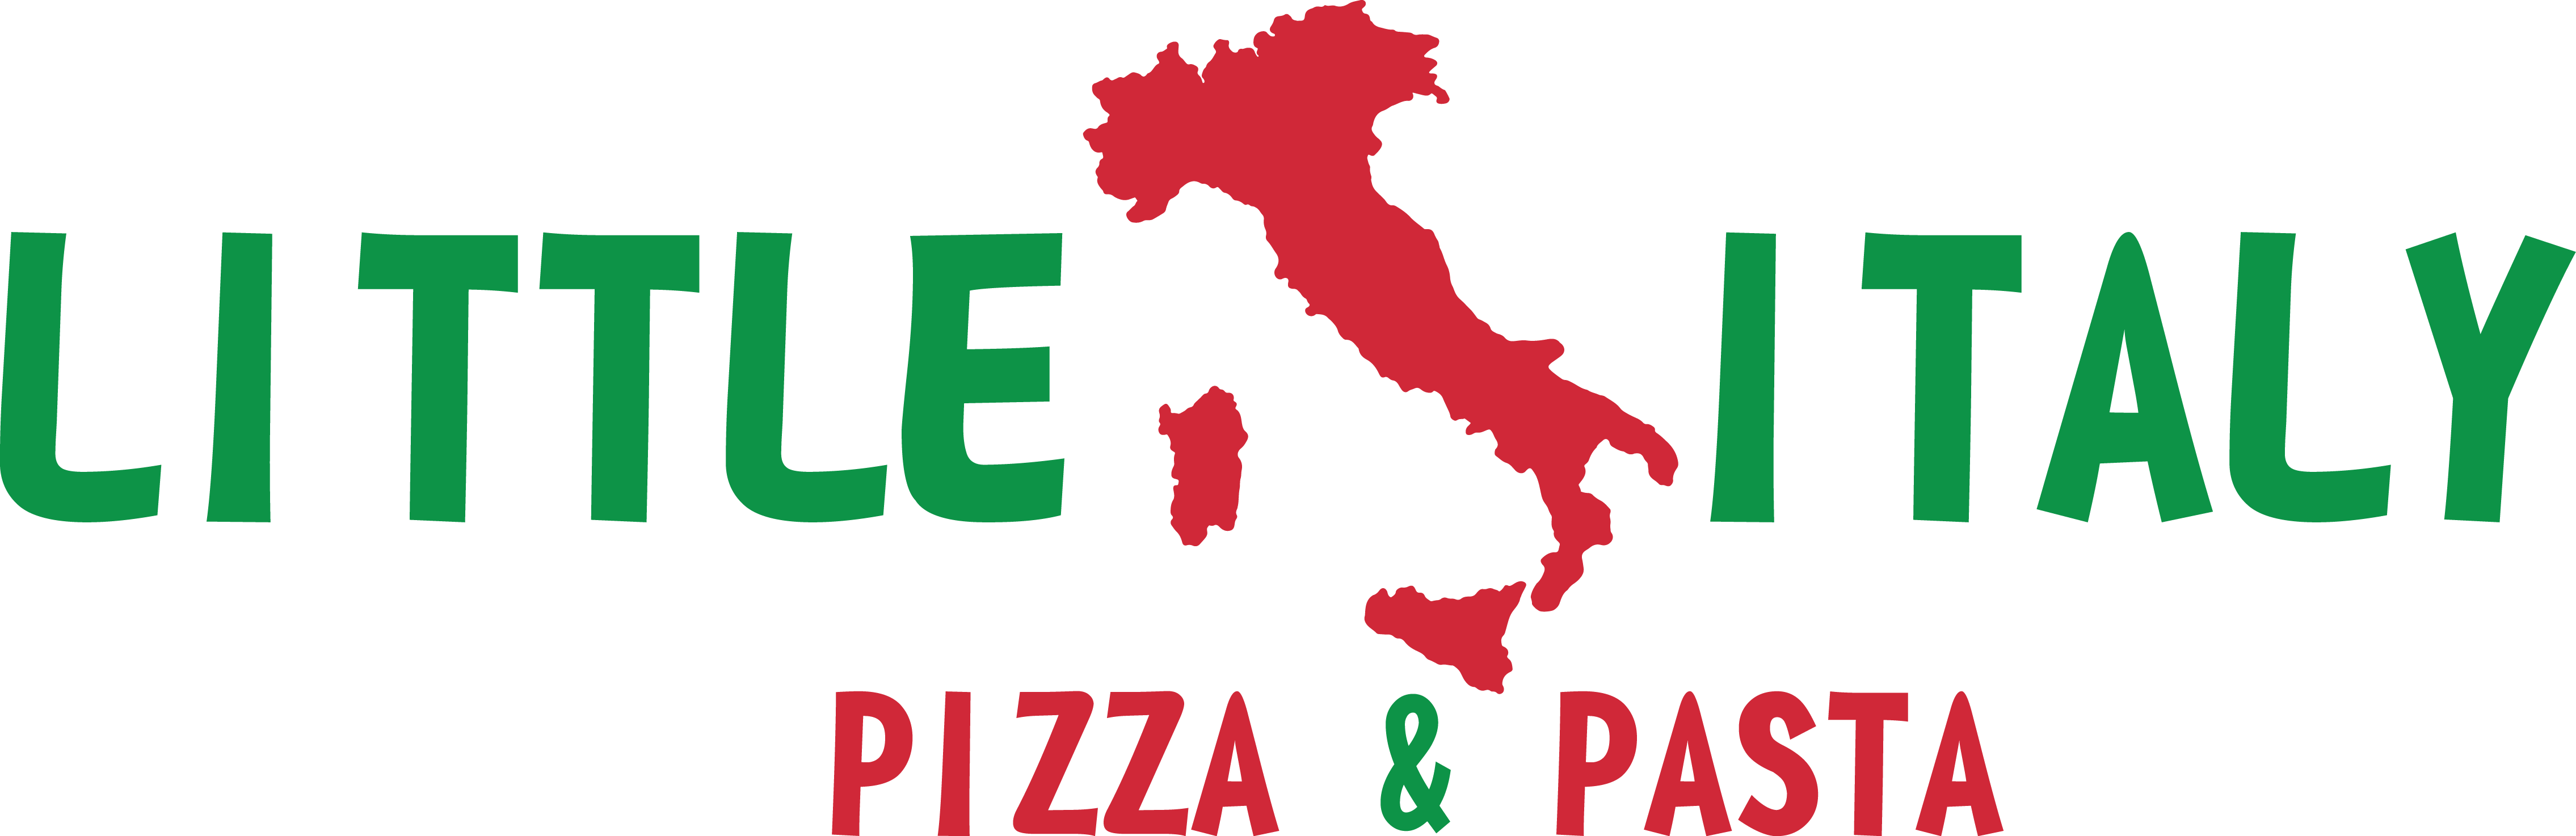 Little Italy Pizza & Pasta in Ormond Beach, Florida - Order Online